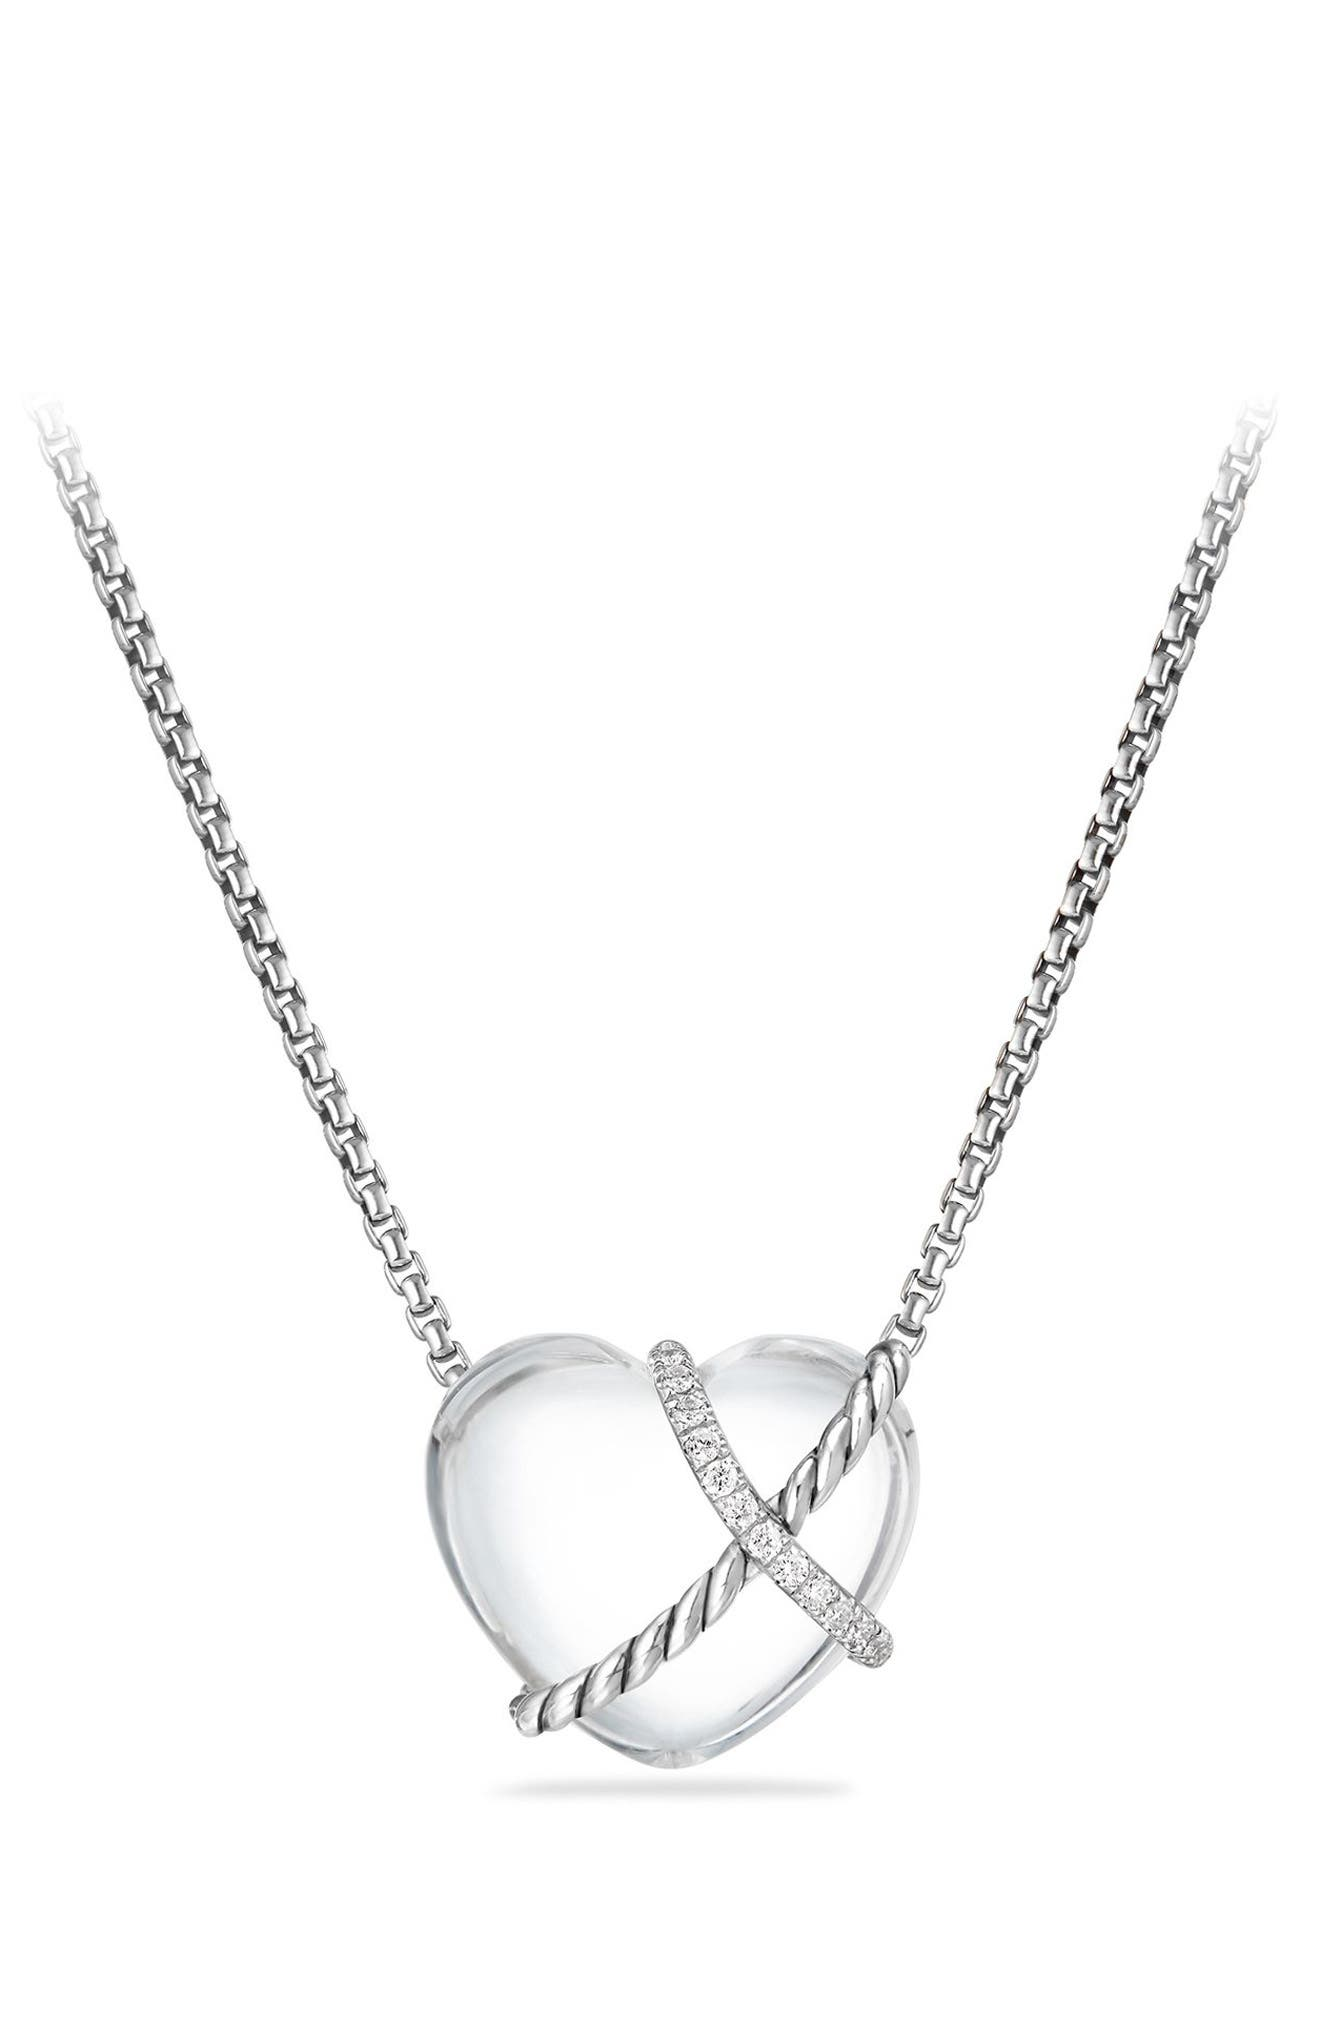 Le Petite Coeur Sculpted Heart Chain Necklace with Diamonds,                             Main thumbnail 1, color,                             CRYSTAL